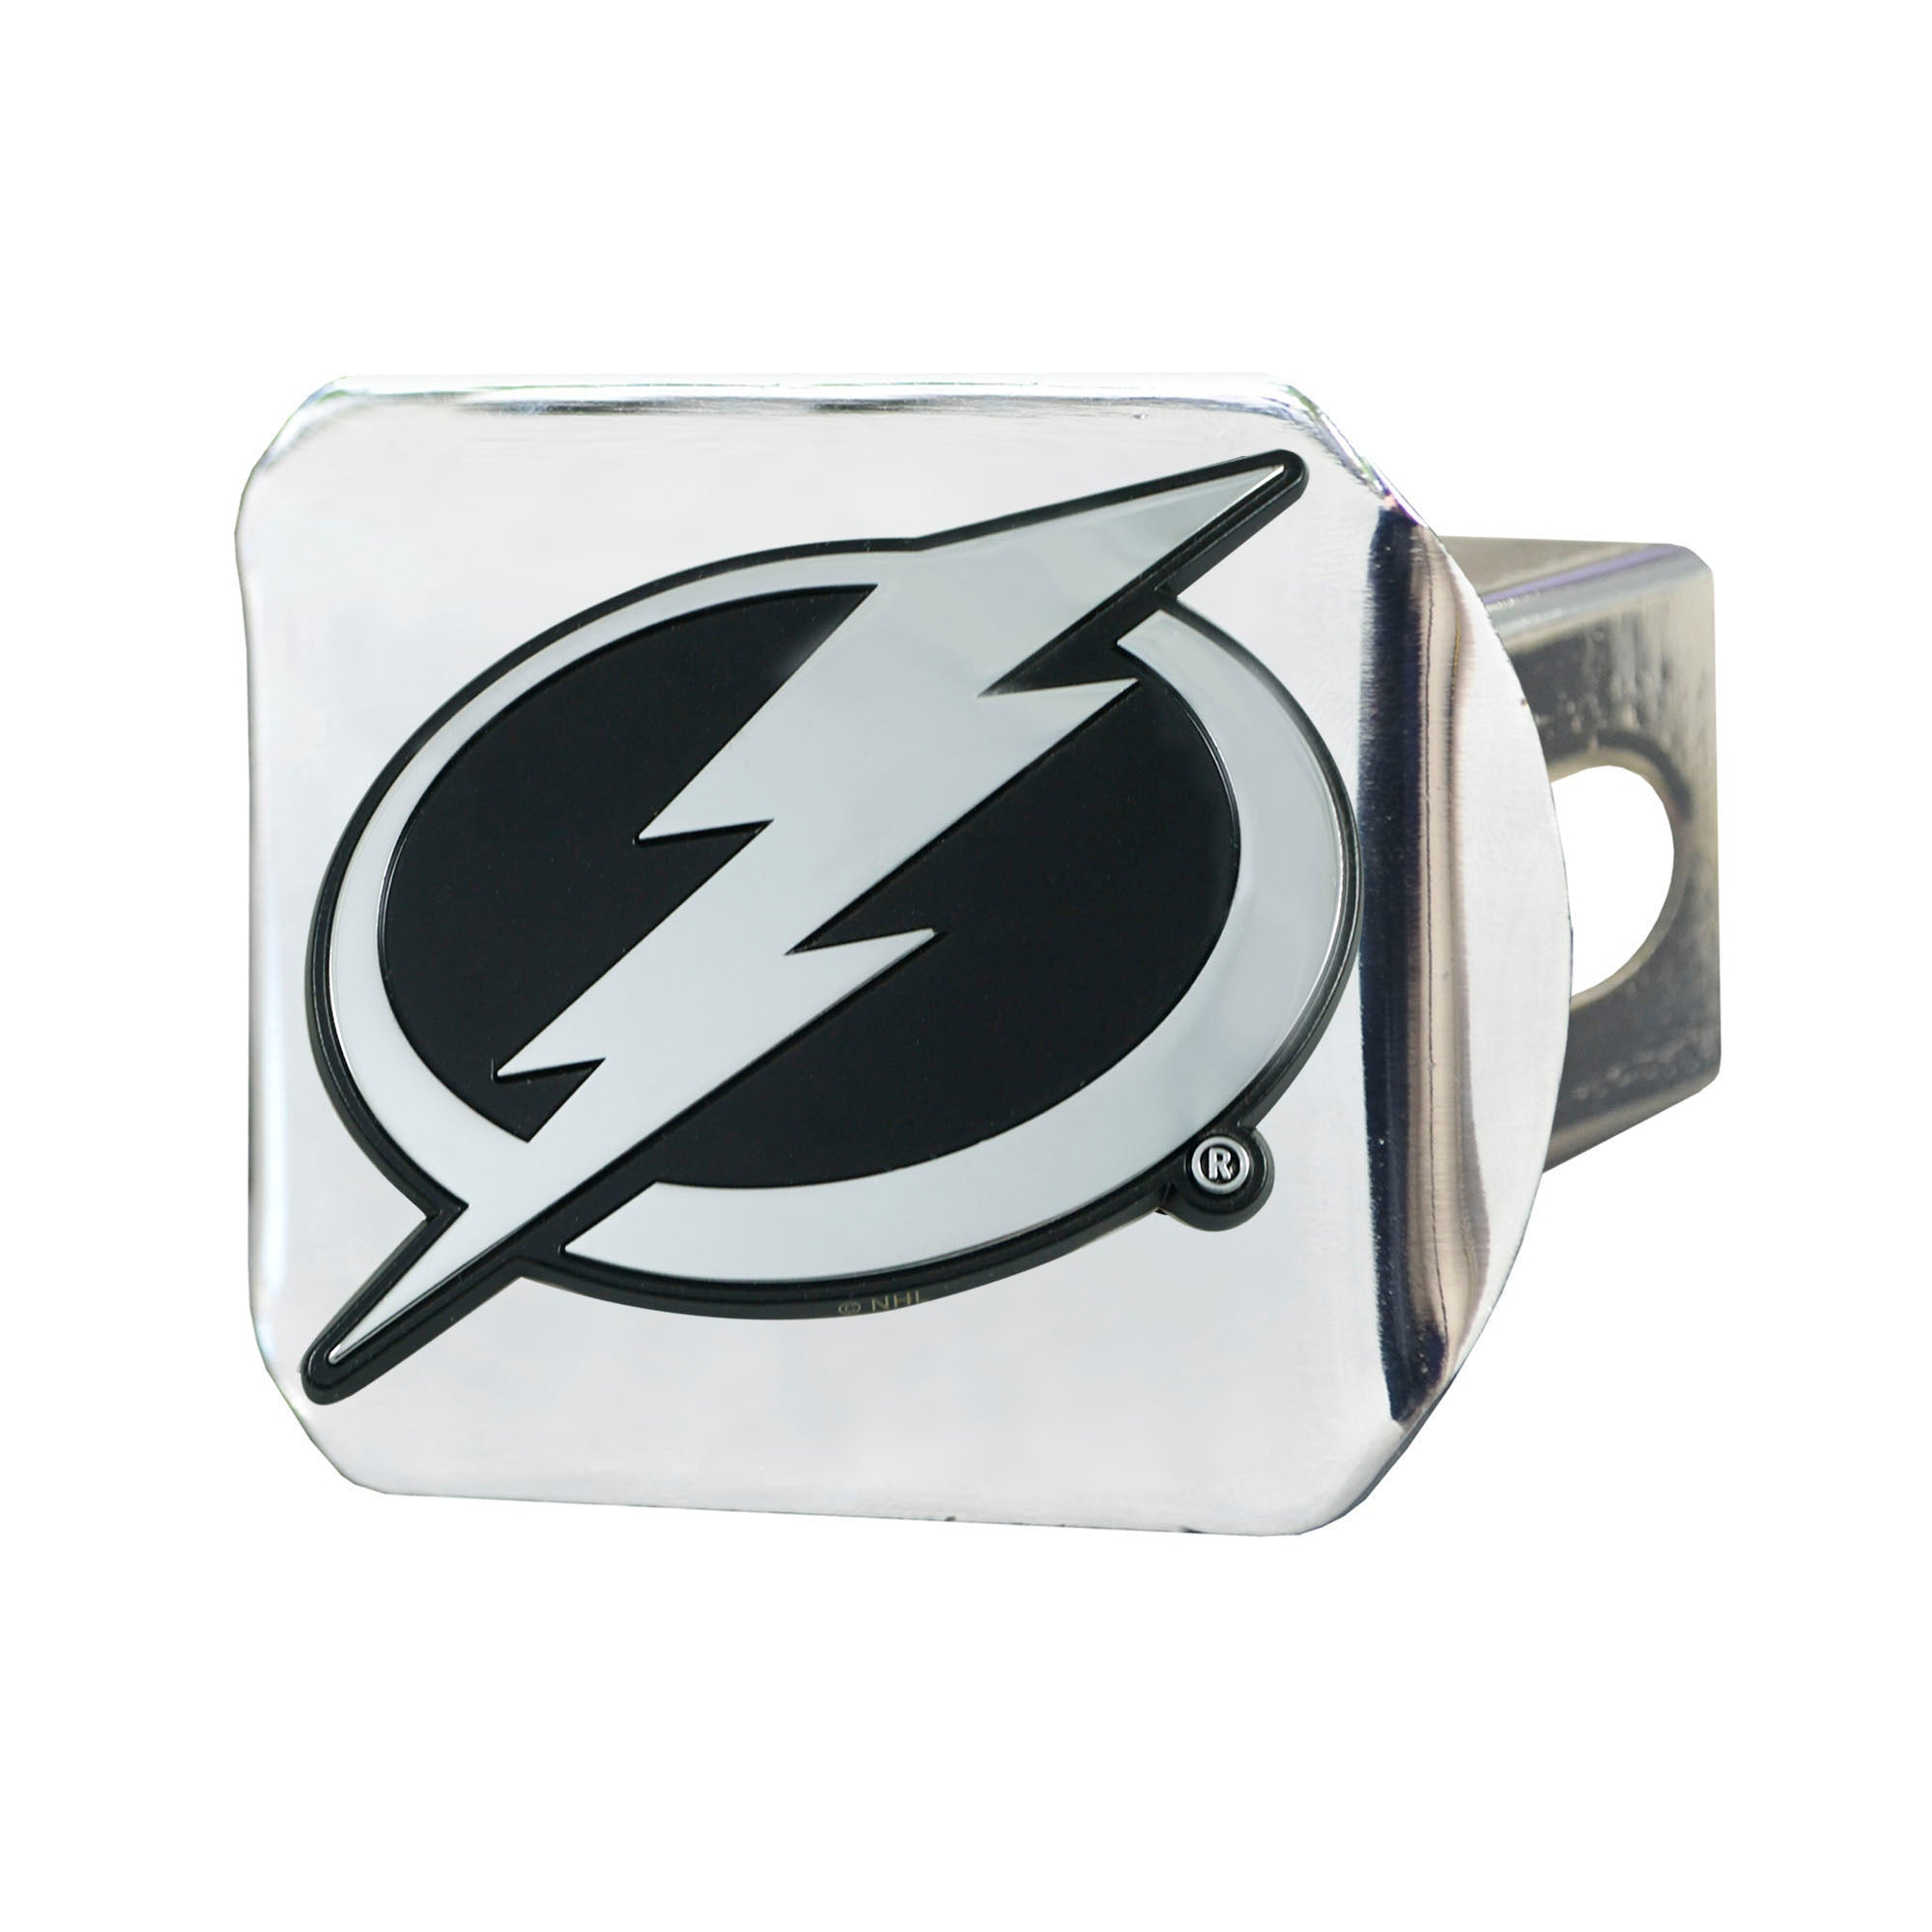 "NHL - Tampa Bay Lightning Hitch Cover - Chrome on Chrome 3.4""x4"""